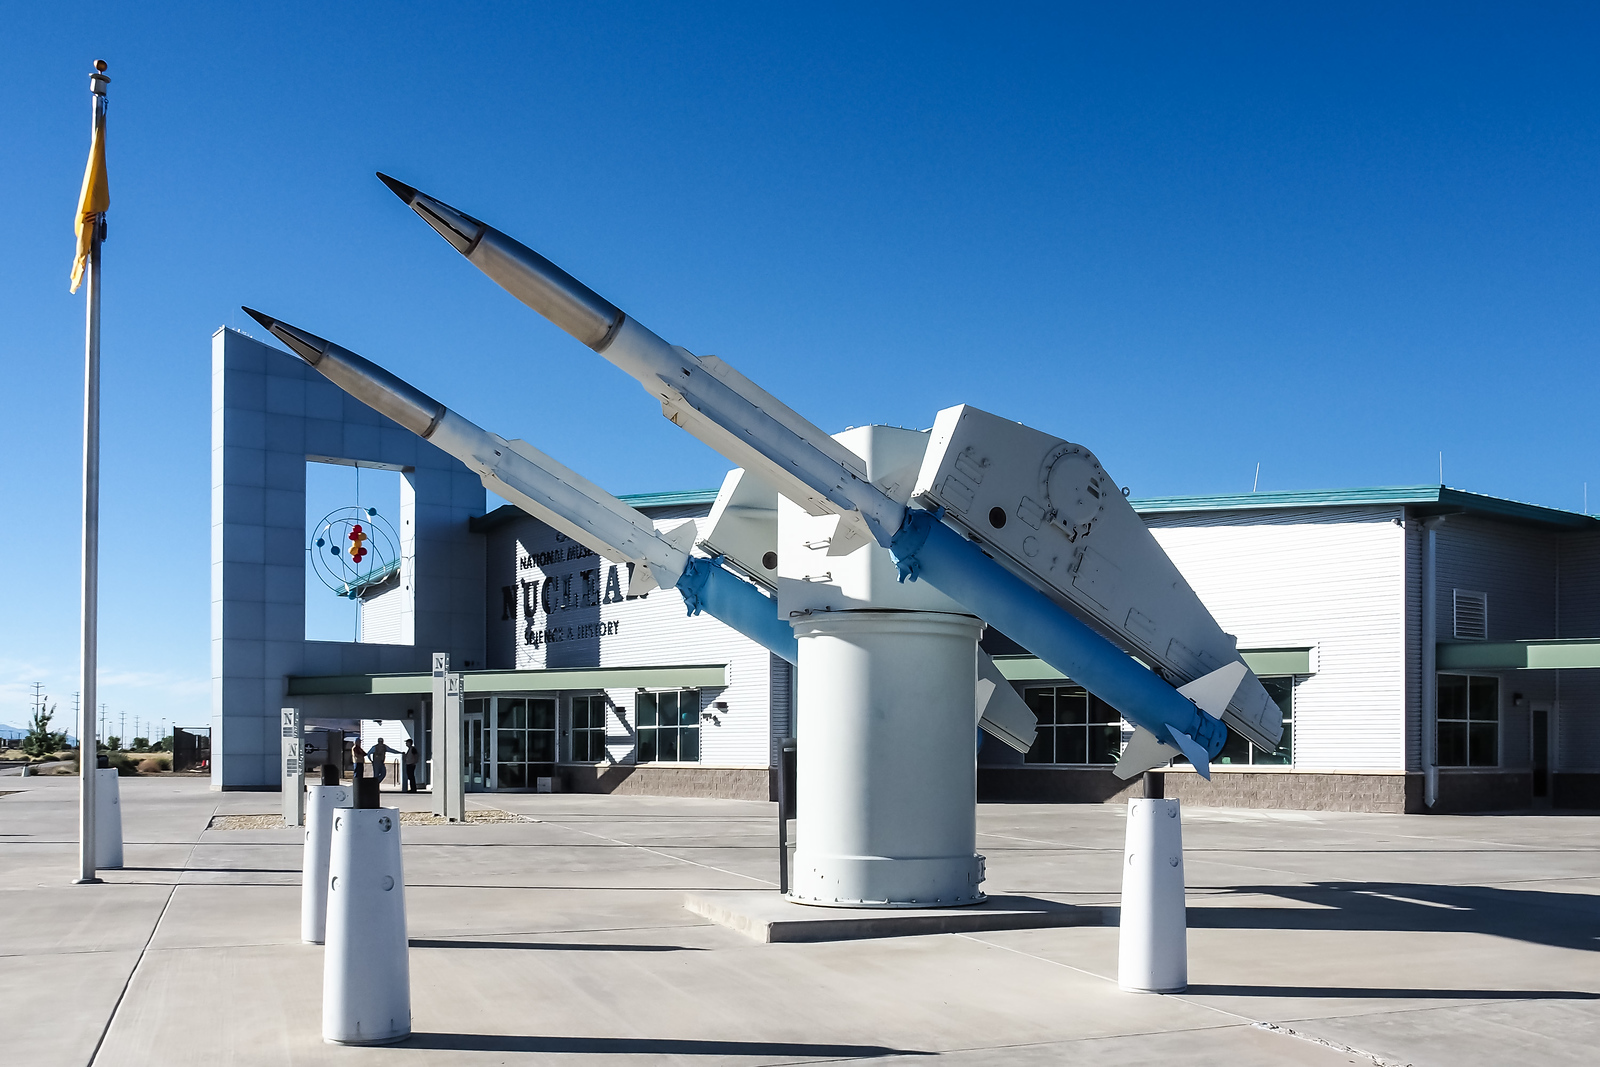 Nat. Museum of Nuclear Science and History